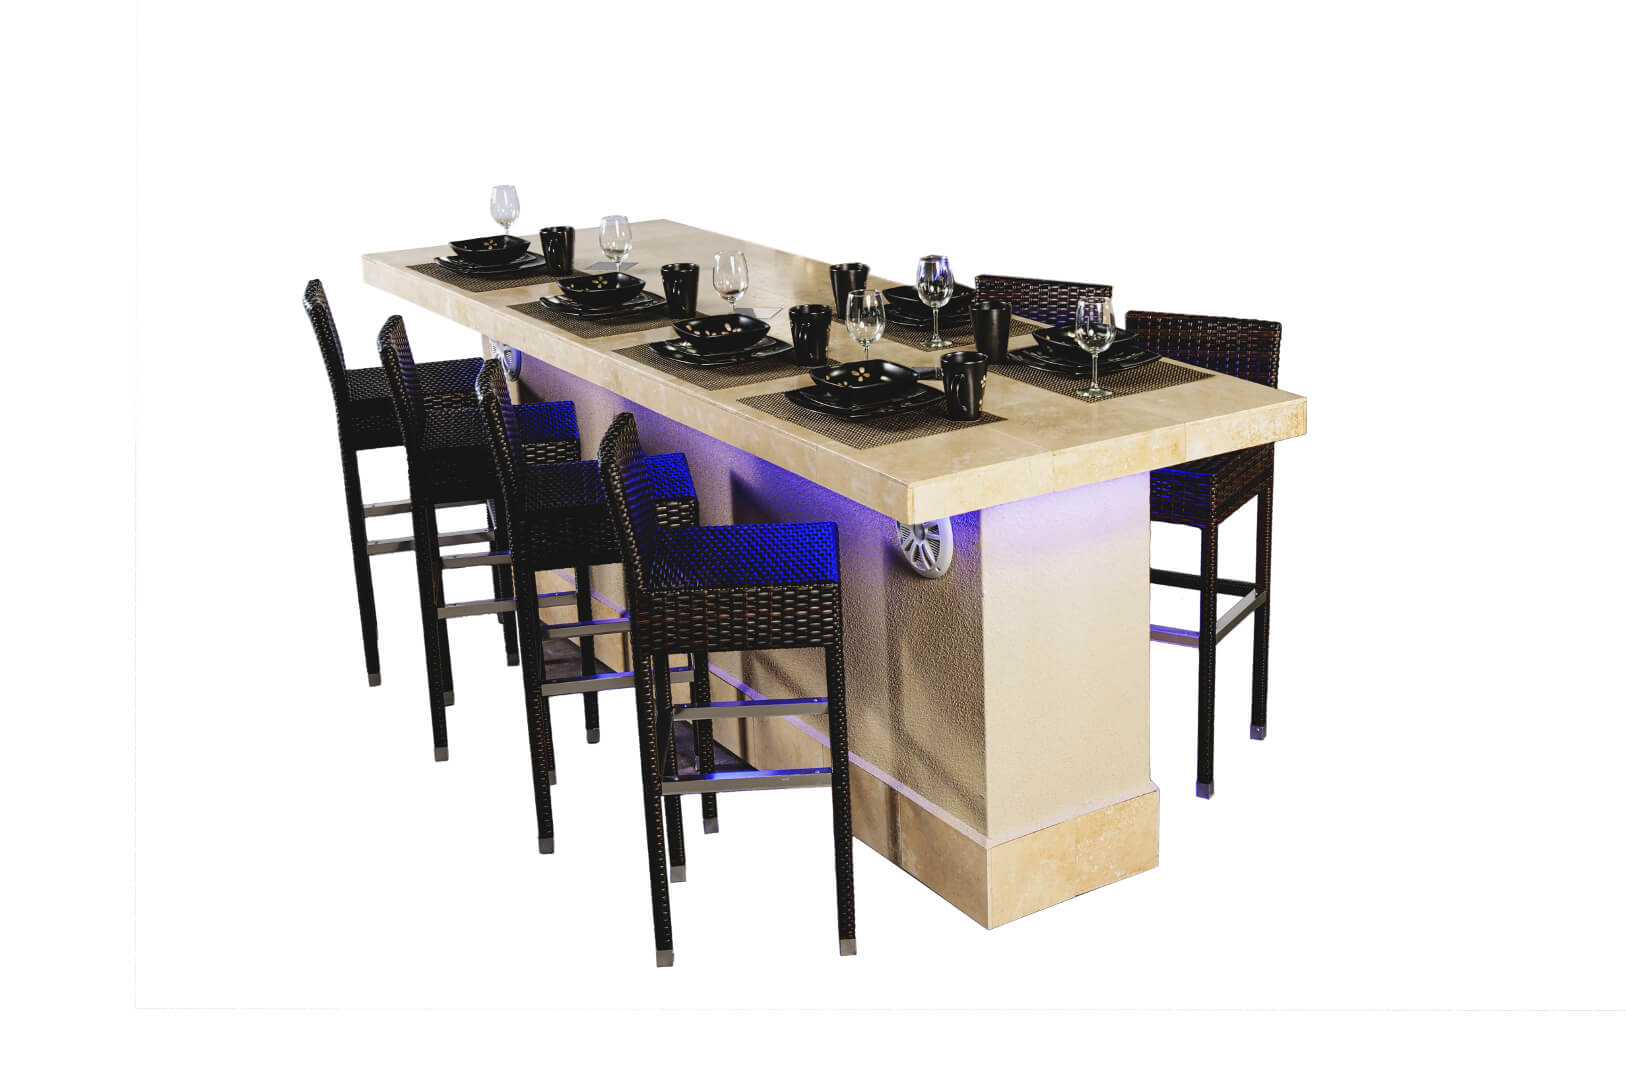 Paradise Grills Direct Outdoor Kitchens - Build Your Own: St. Thomas